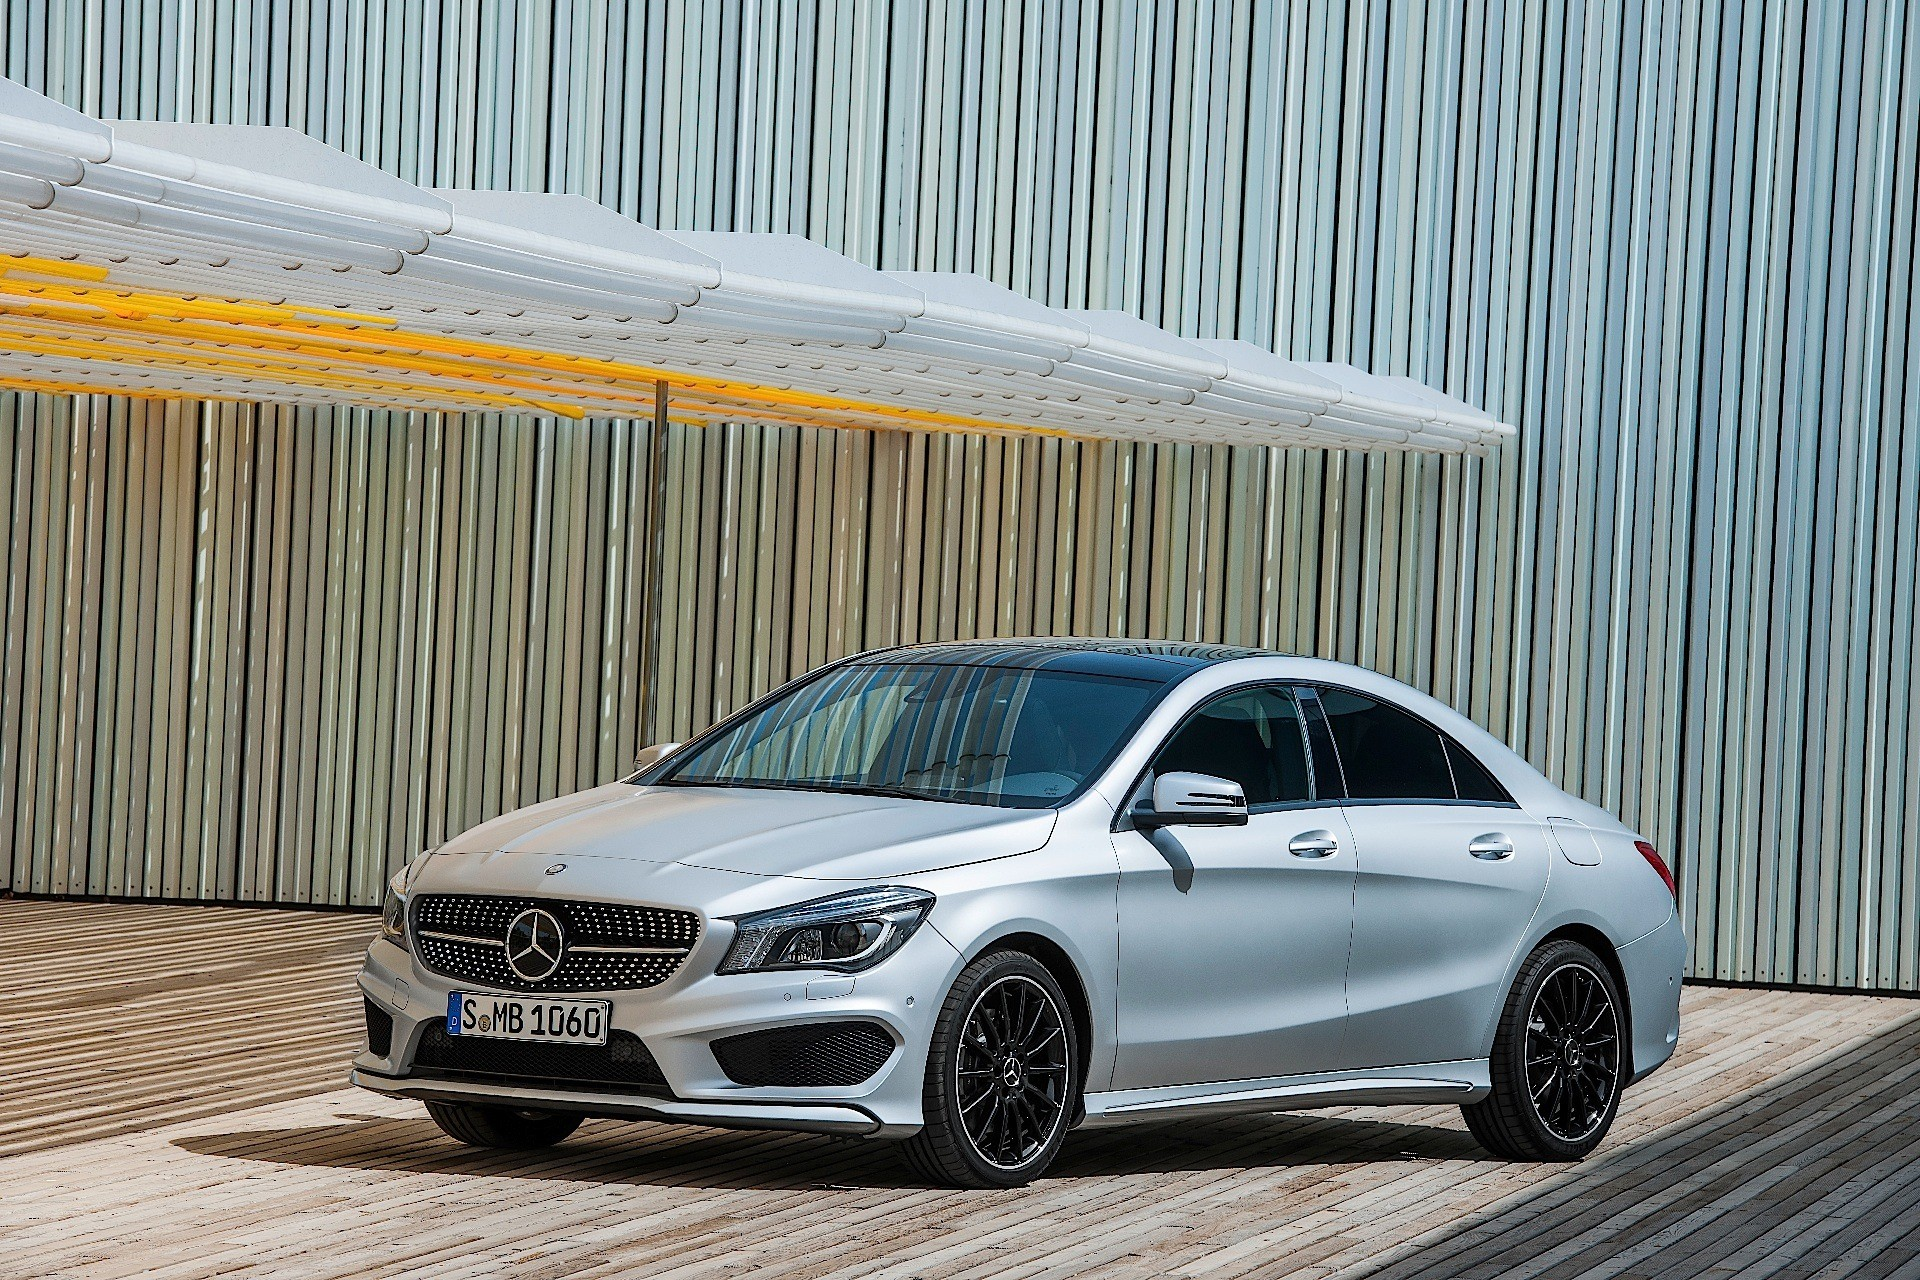 mercedes a class sedan reportedly coming in 2018 to fight chinese bmw 1 series autoevolution. Black Bedroom Furniture Sets. Home Design Ideas